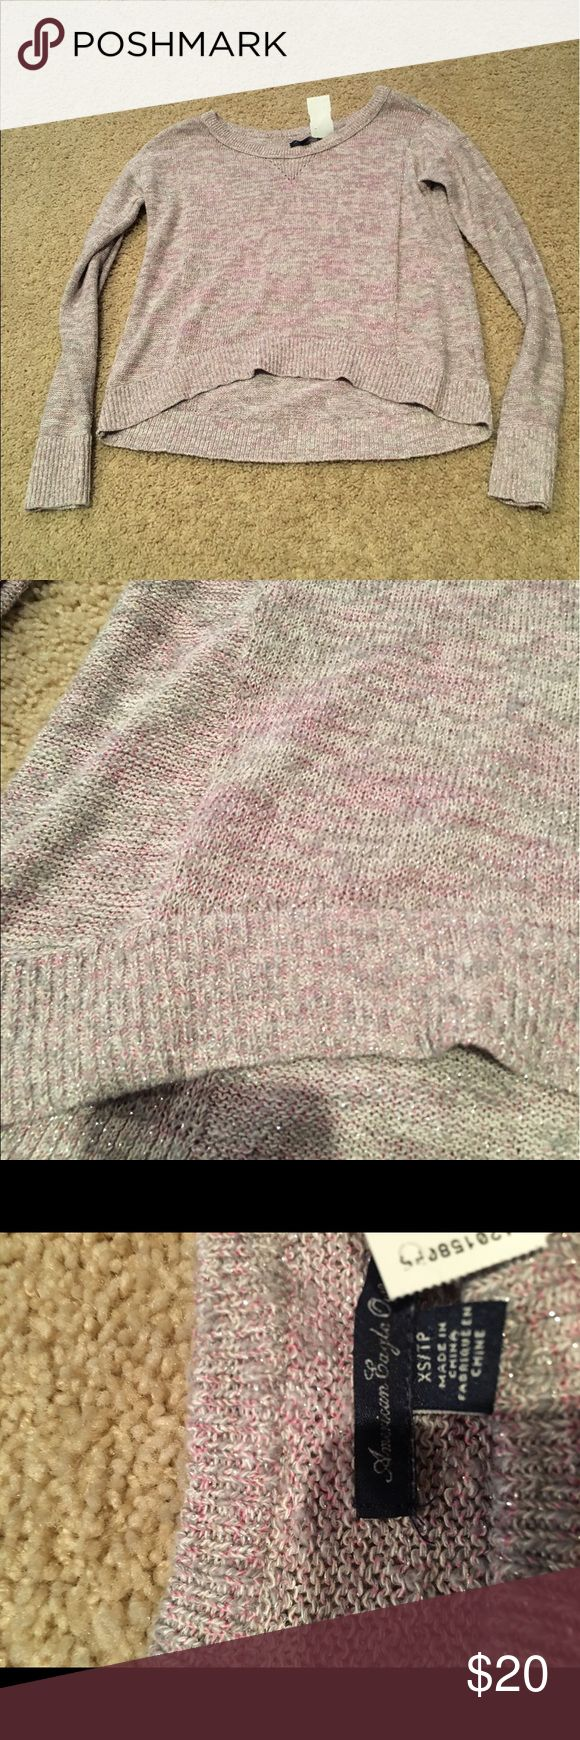 Gray and purple long sleeve top never worn Gray and purple long sleeve top never worn American Eagle Outfitters Tops Tees - Long Sleeve